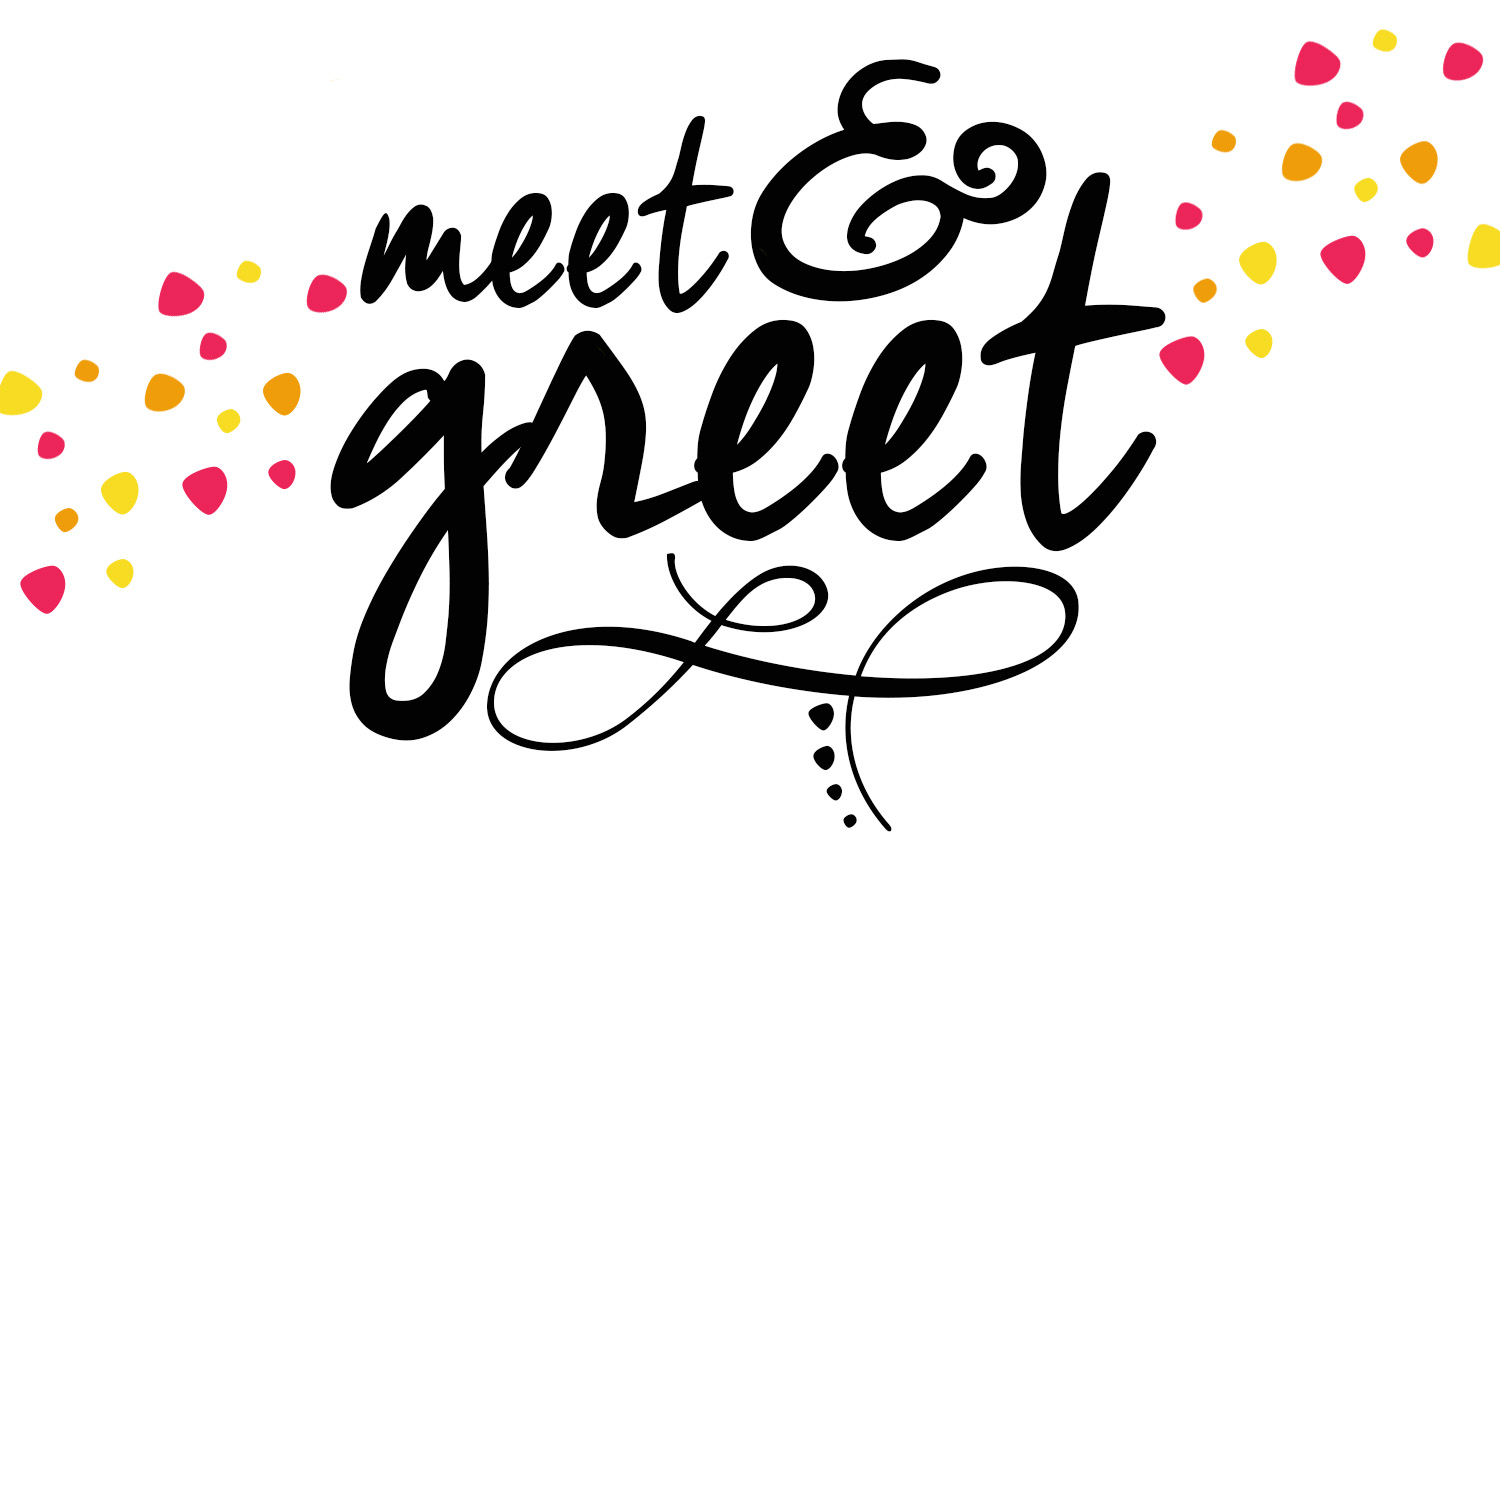 greet printable invitation meet greet printable invitation